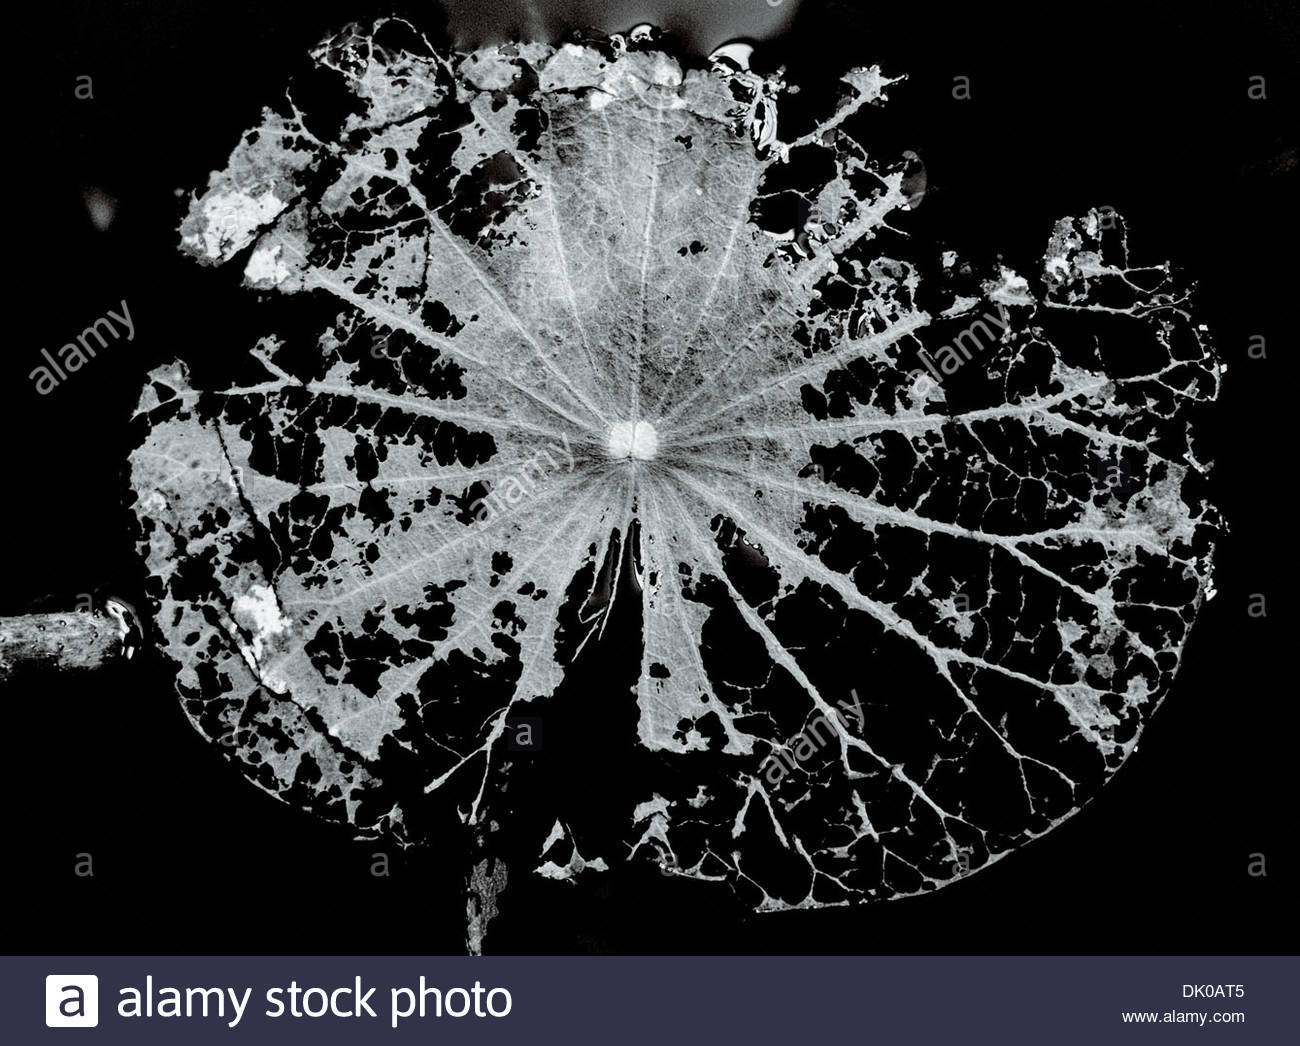 The fragmented spidery remains of a Lotus leaf submerged in a slowly freezing pond in Chungju, South Korea. - Stock Image